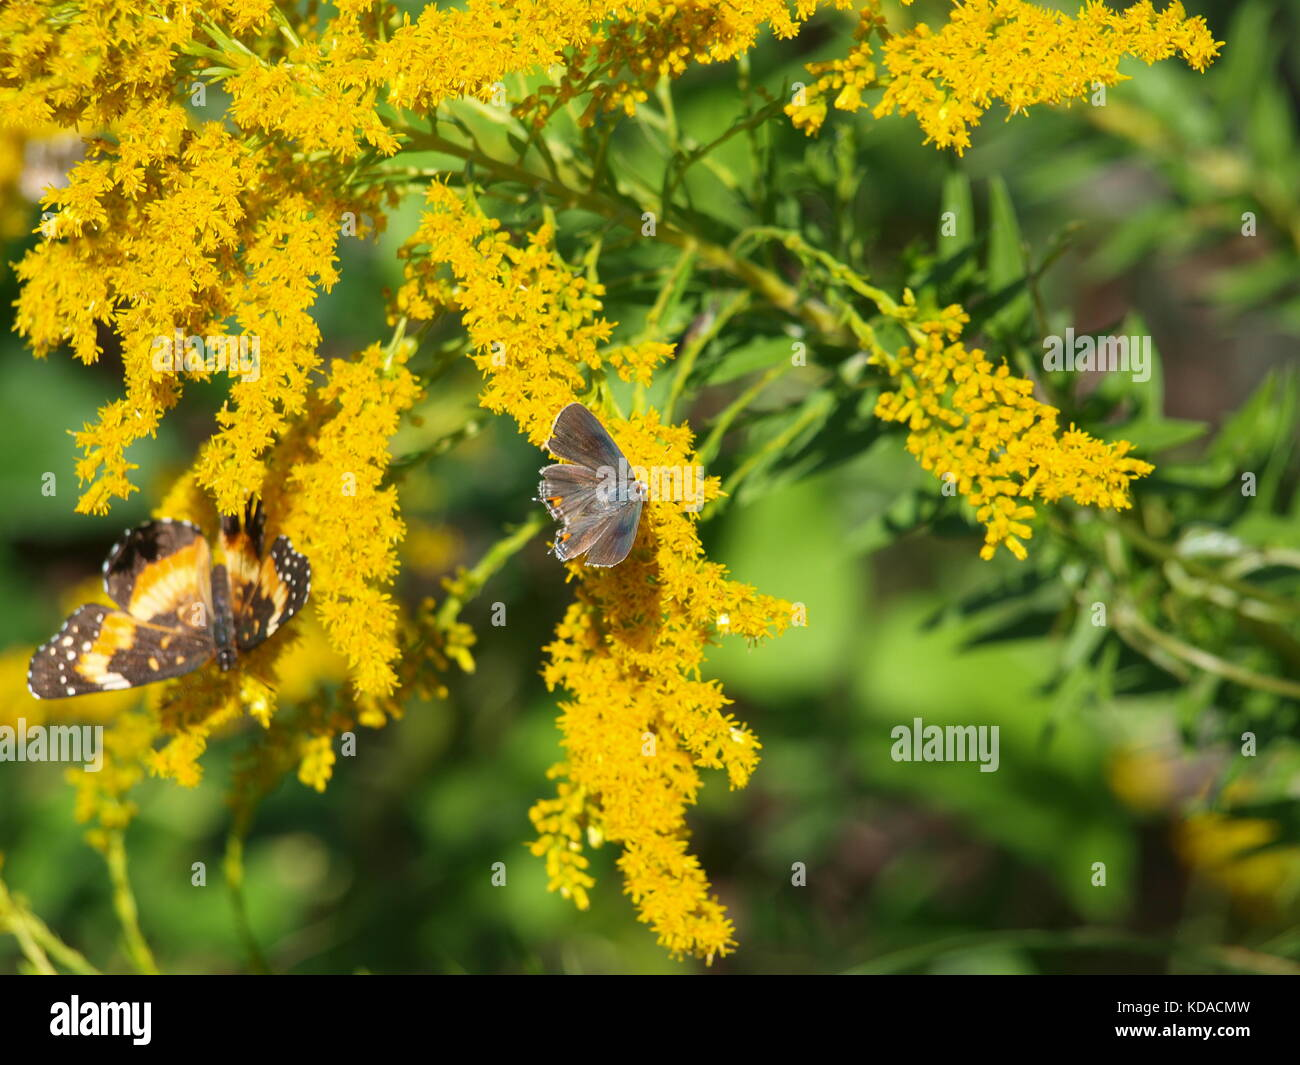 Bufferflies,Bees,Moths,Wasp,Hornet,Pelicans in Dallas - OL5874727 - Stock Image